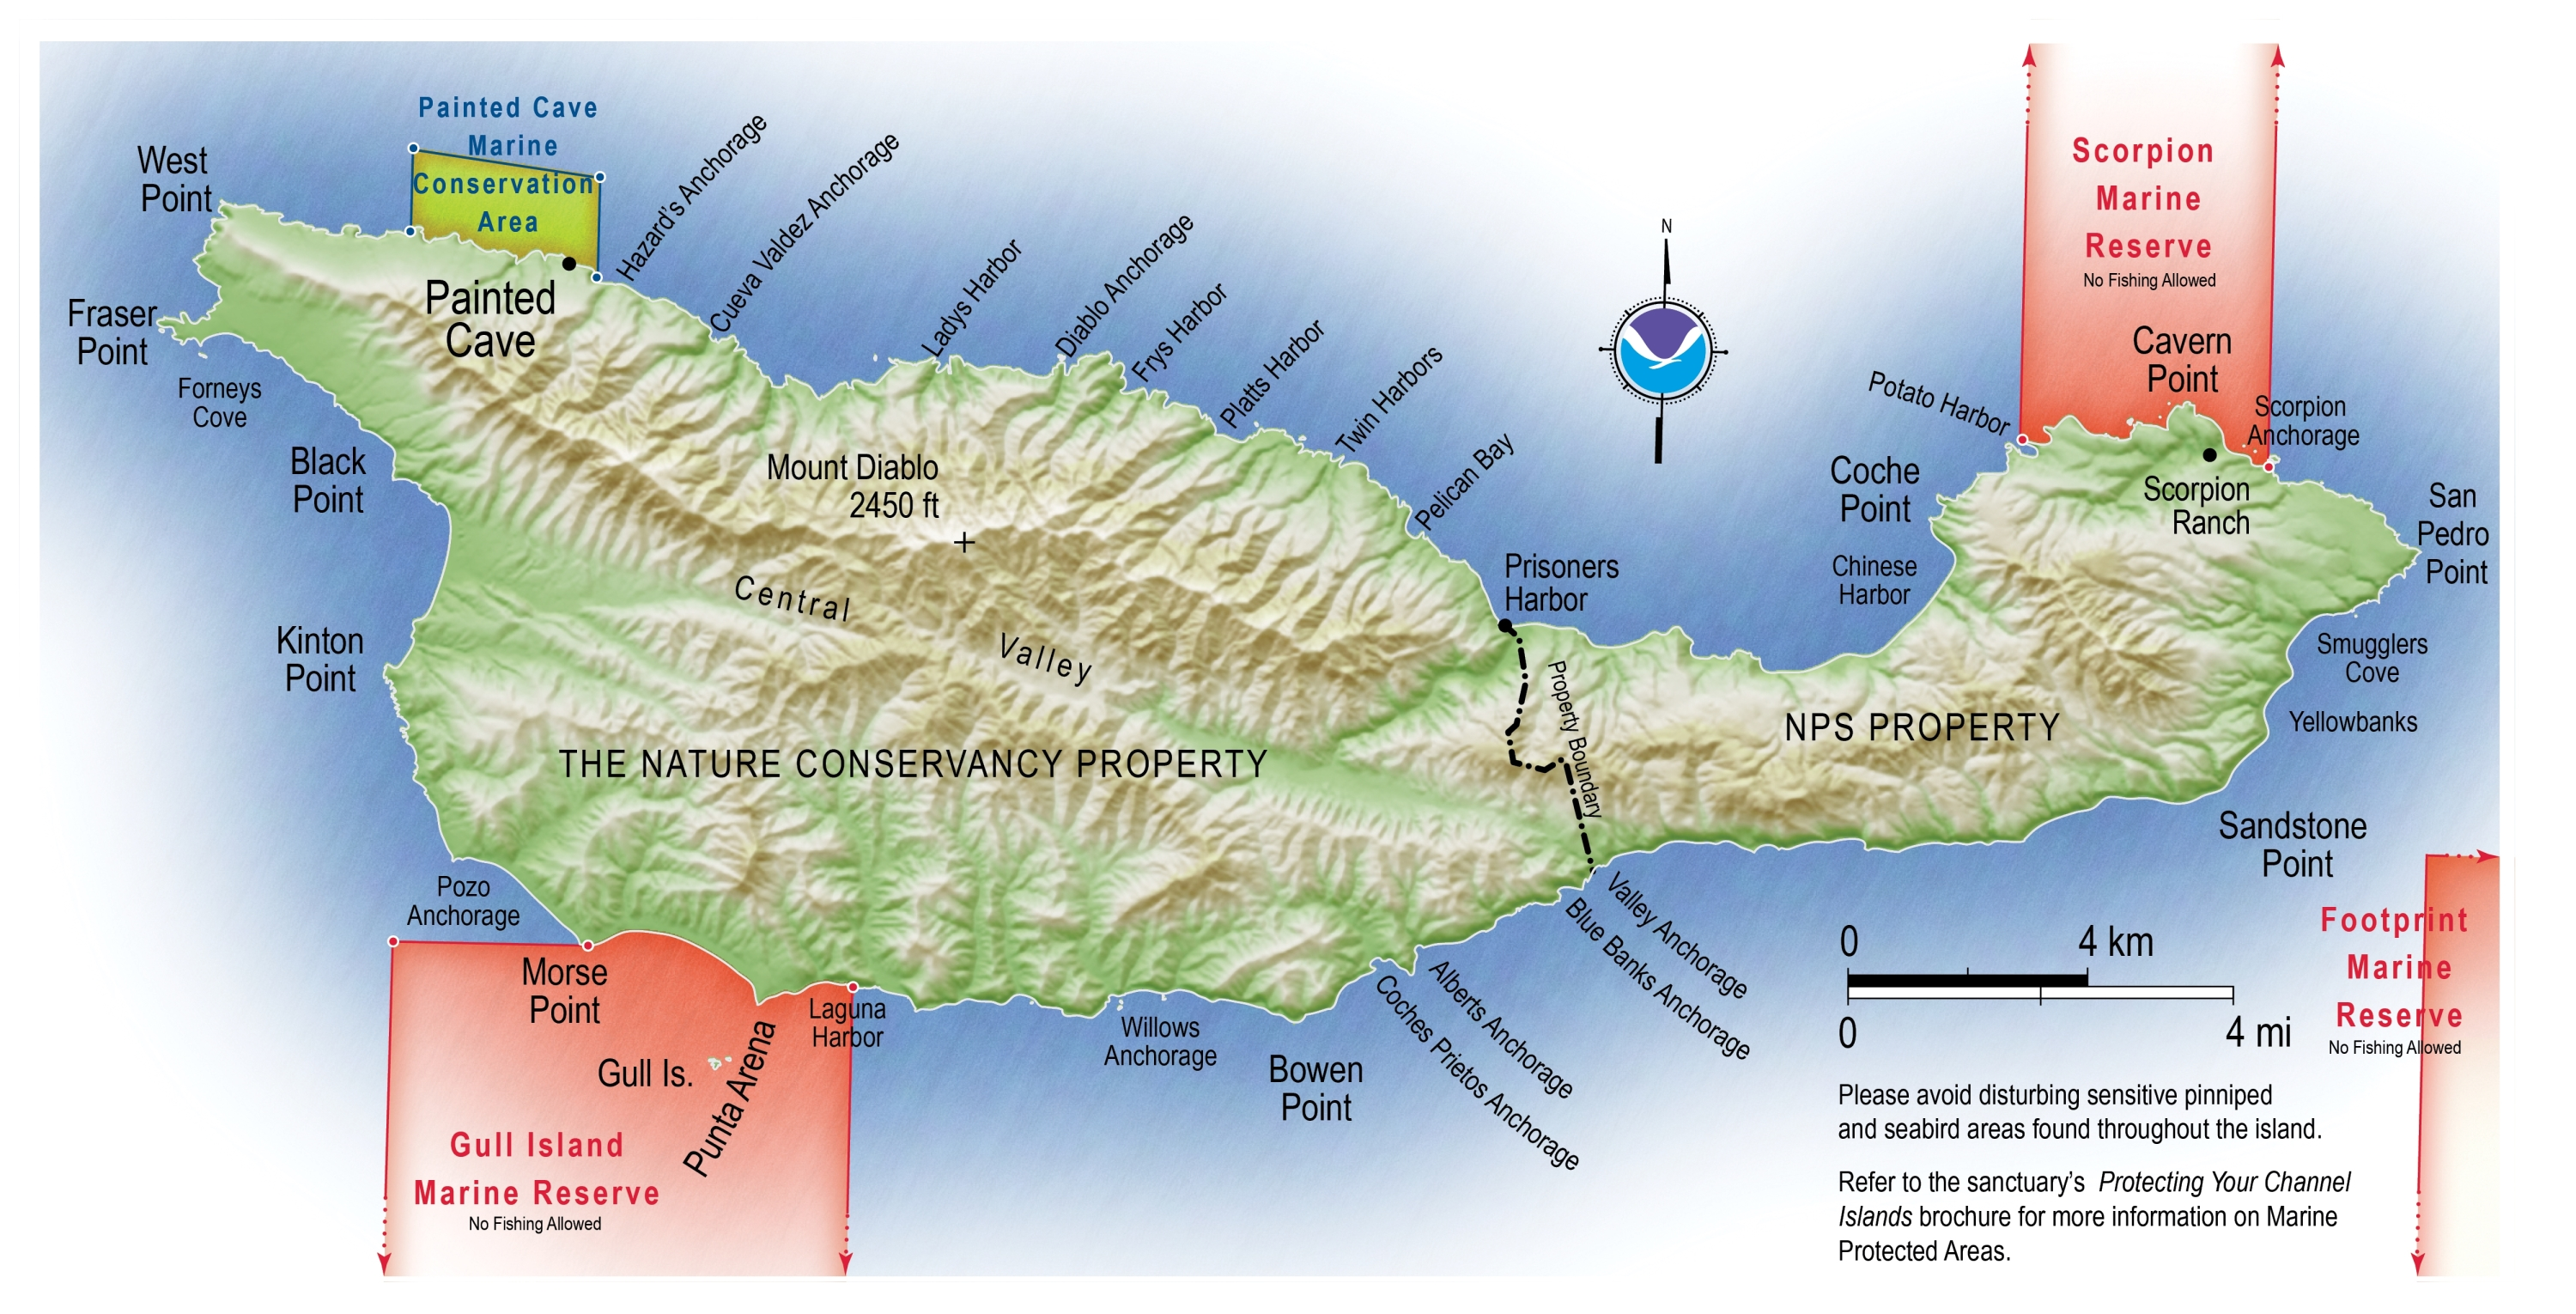 Santa Cruz Islands Map Channel Islands Maps | NPMaps.  just free maps, period.